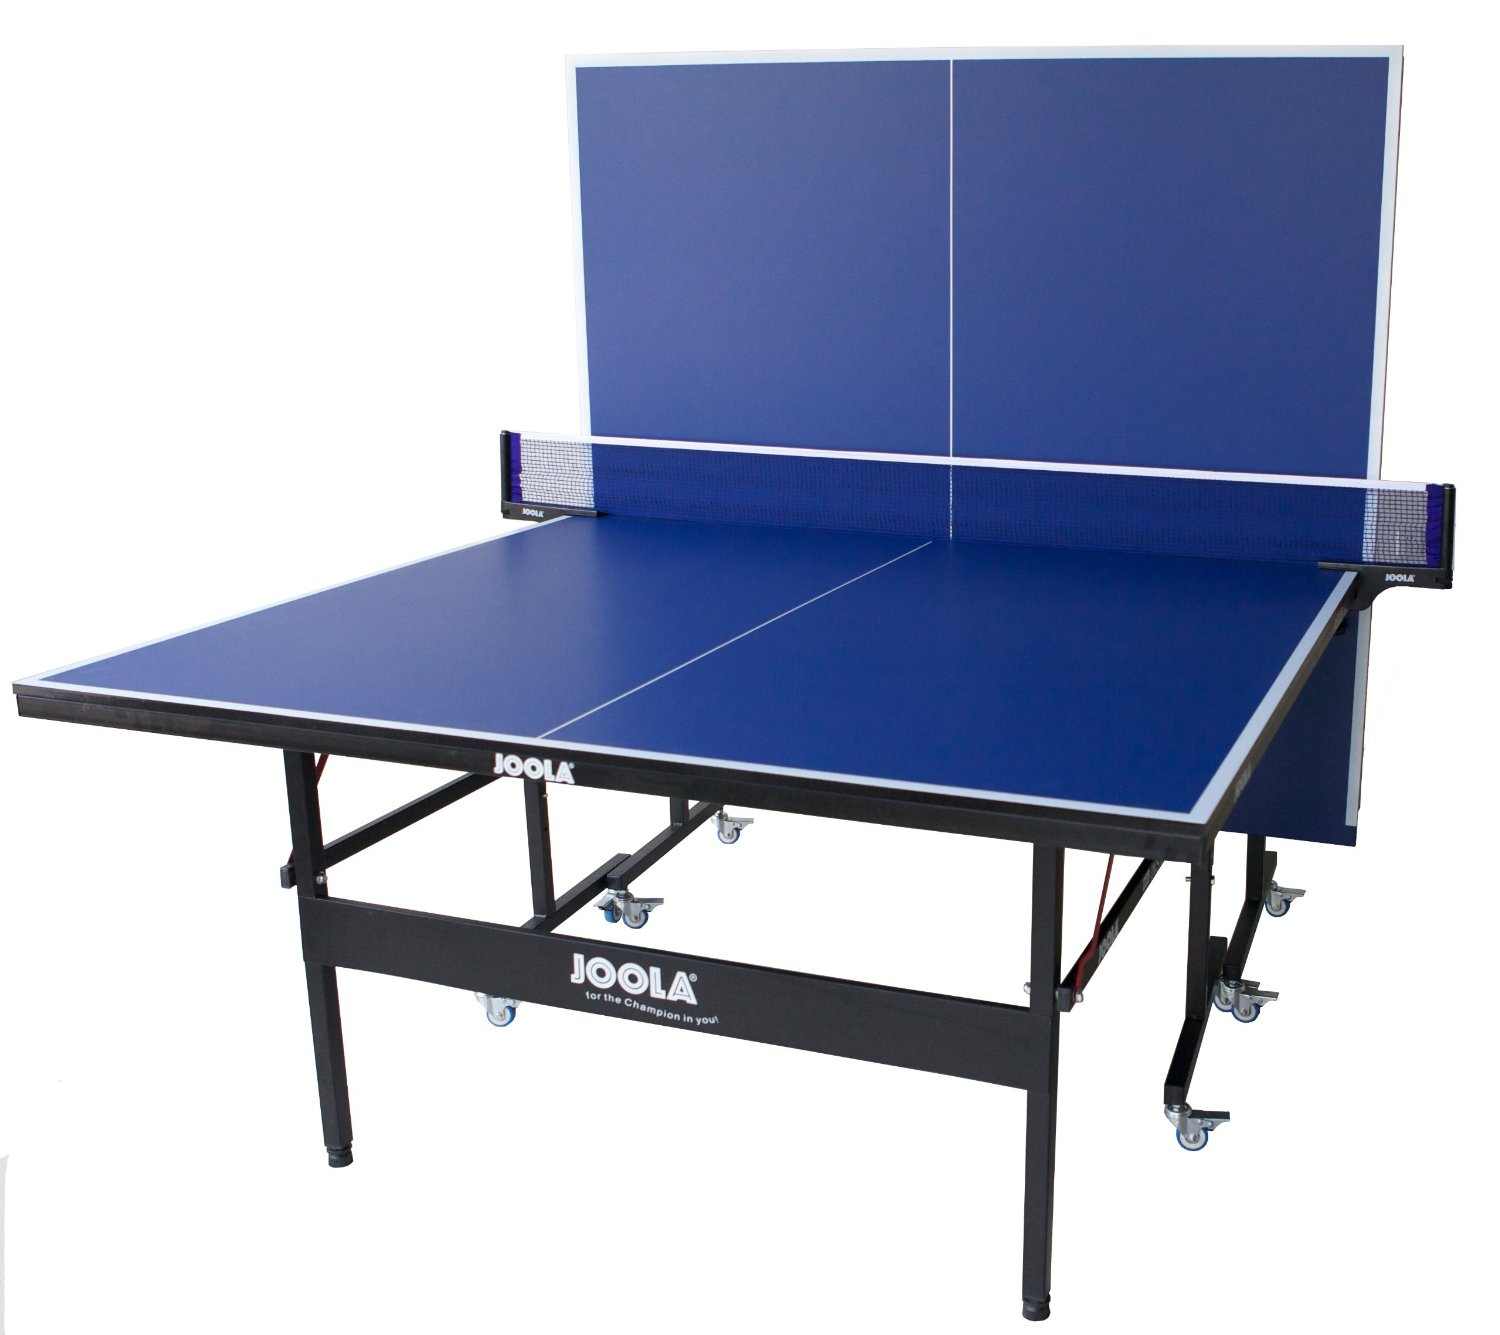 Joola inside table tennis table - Table ping pong prix ...